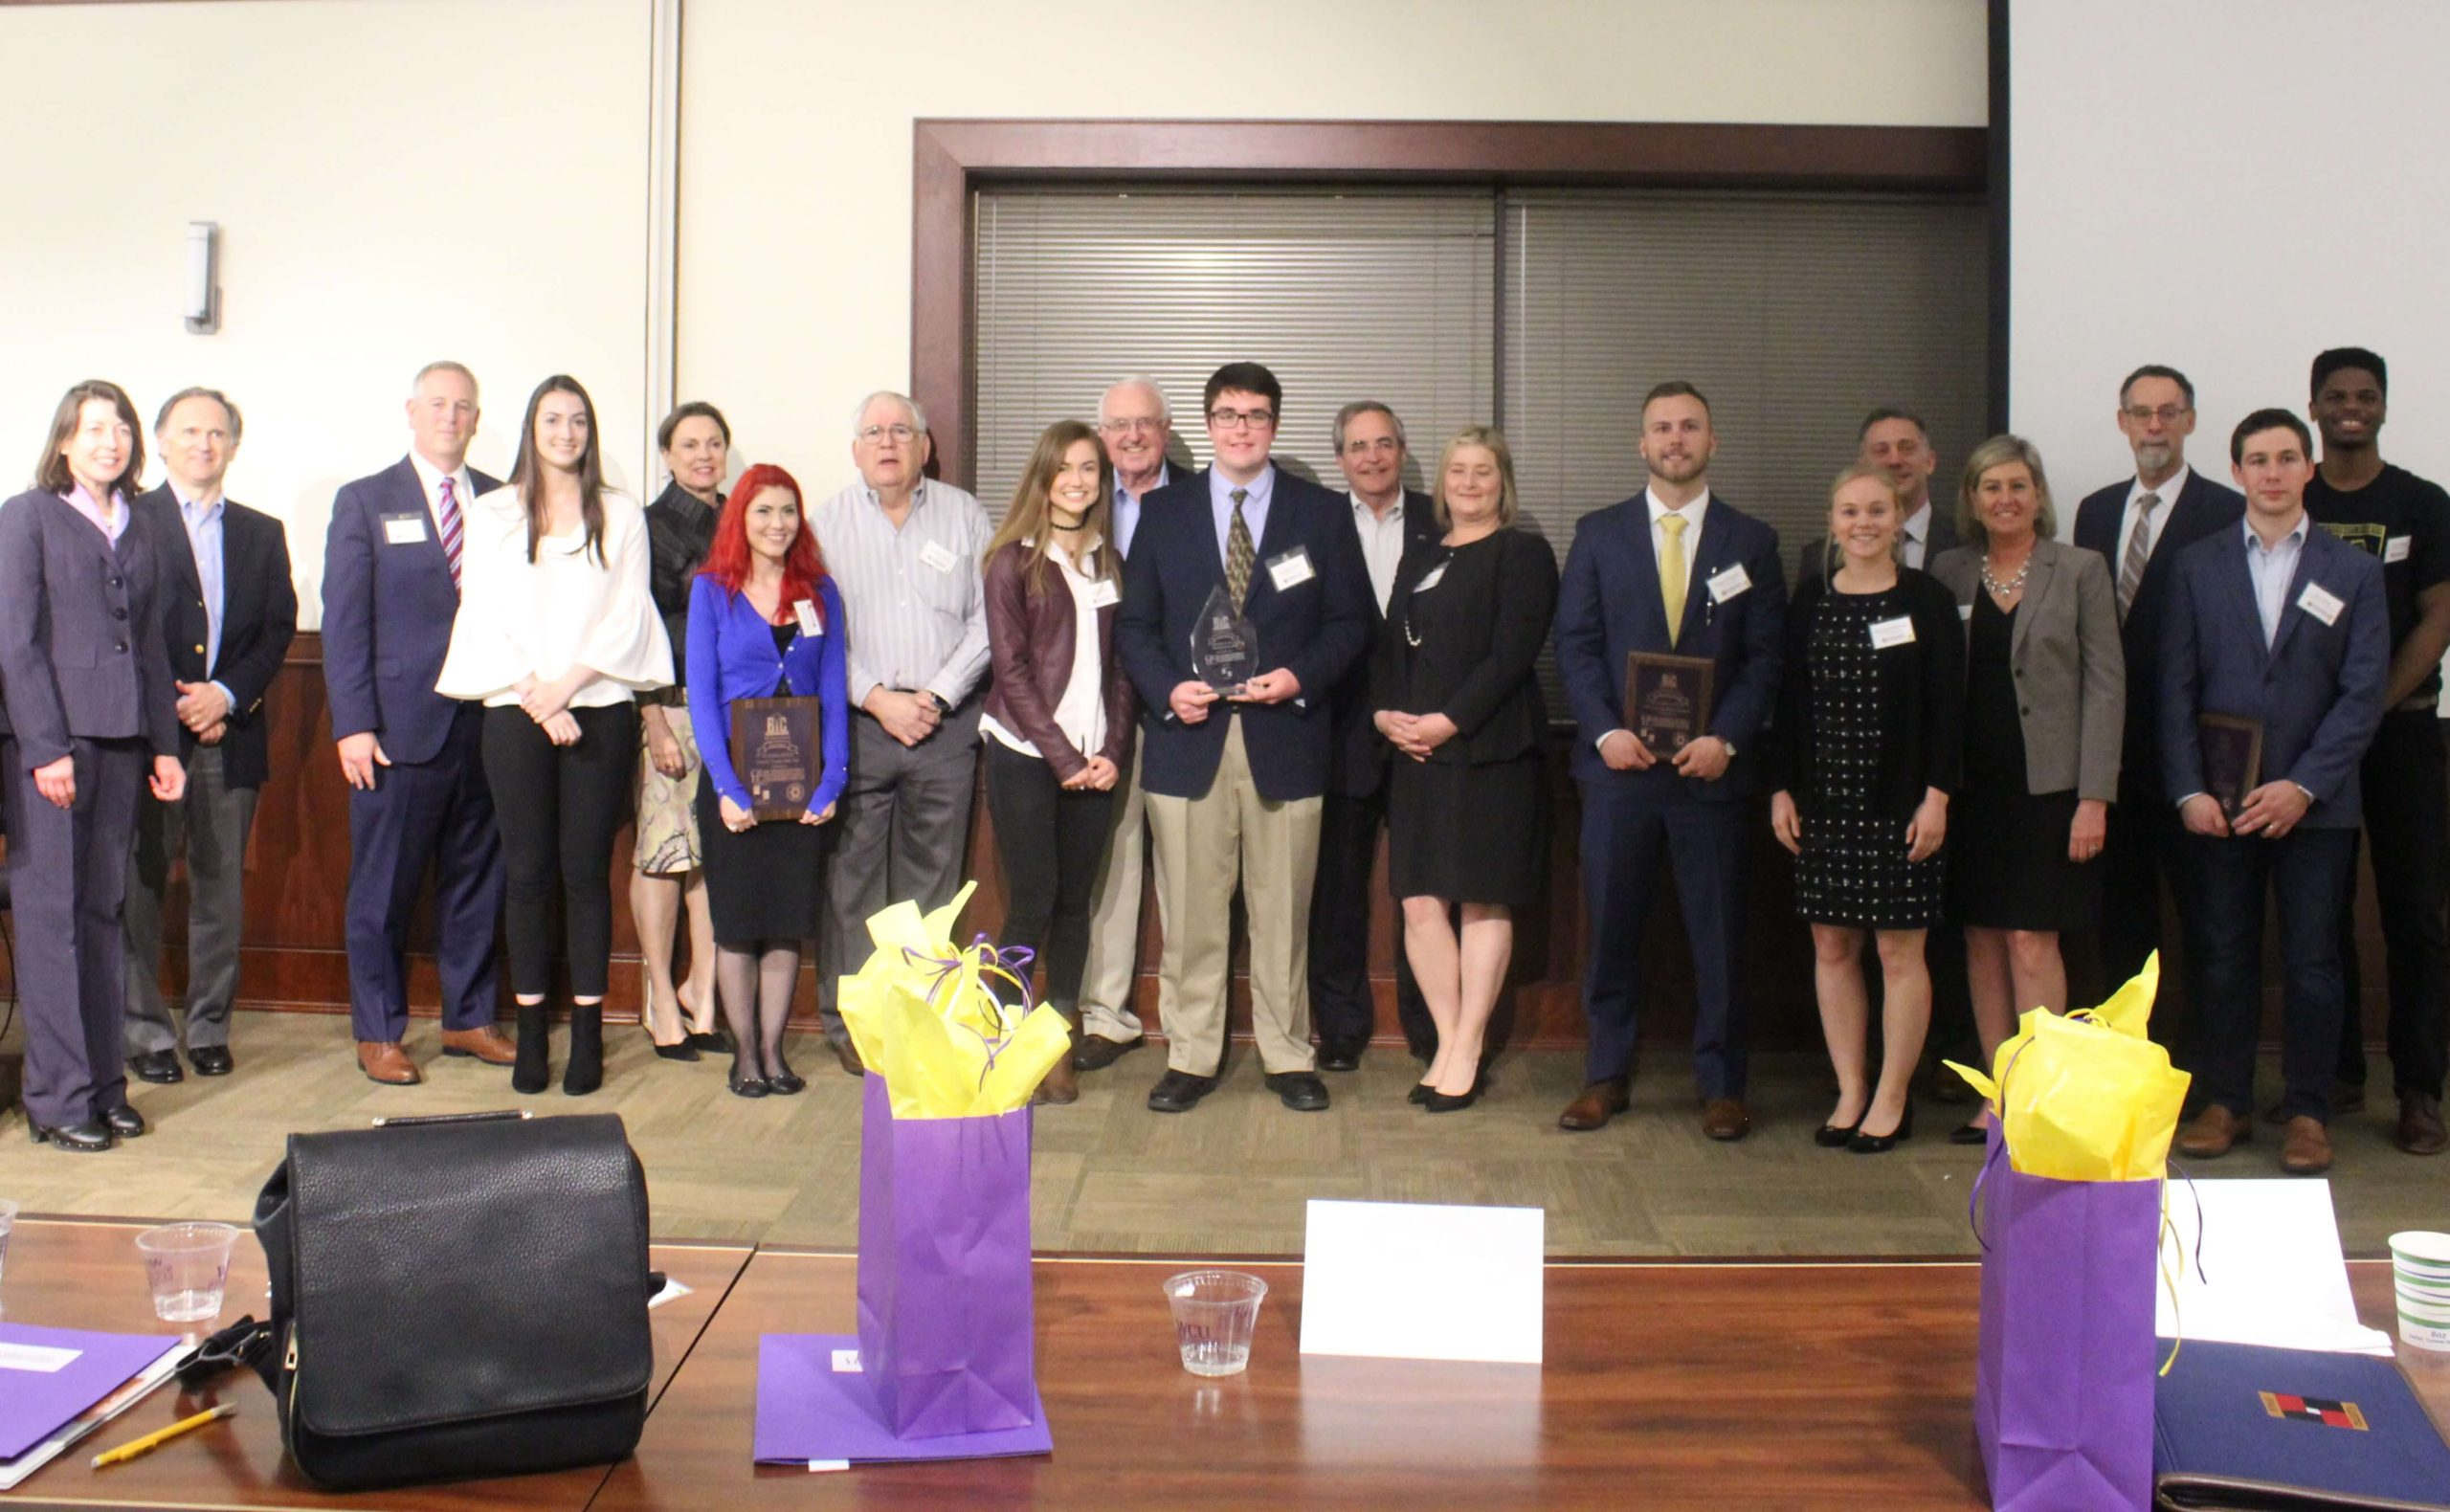 Let Your Big Idea Become a Business Reality at WCU's 2019 Business Idea Competition